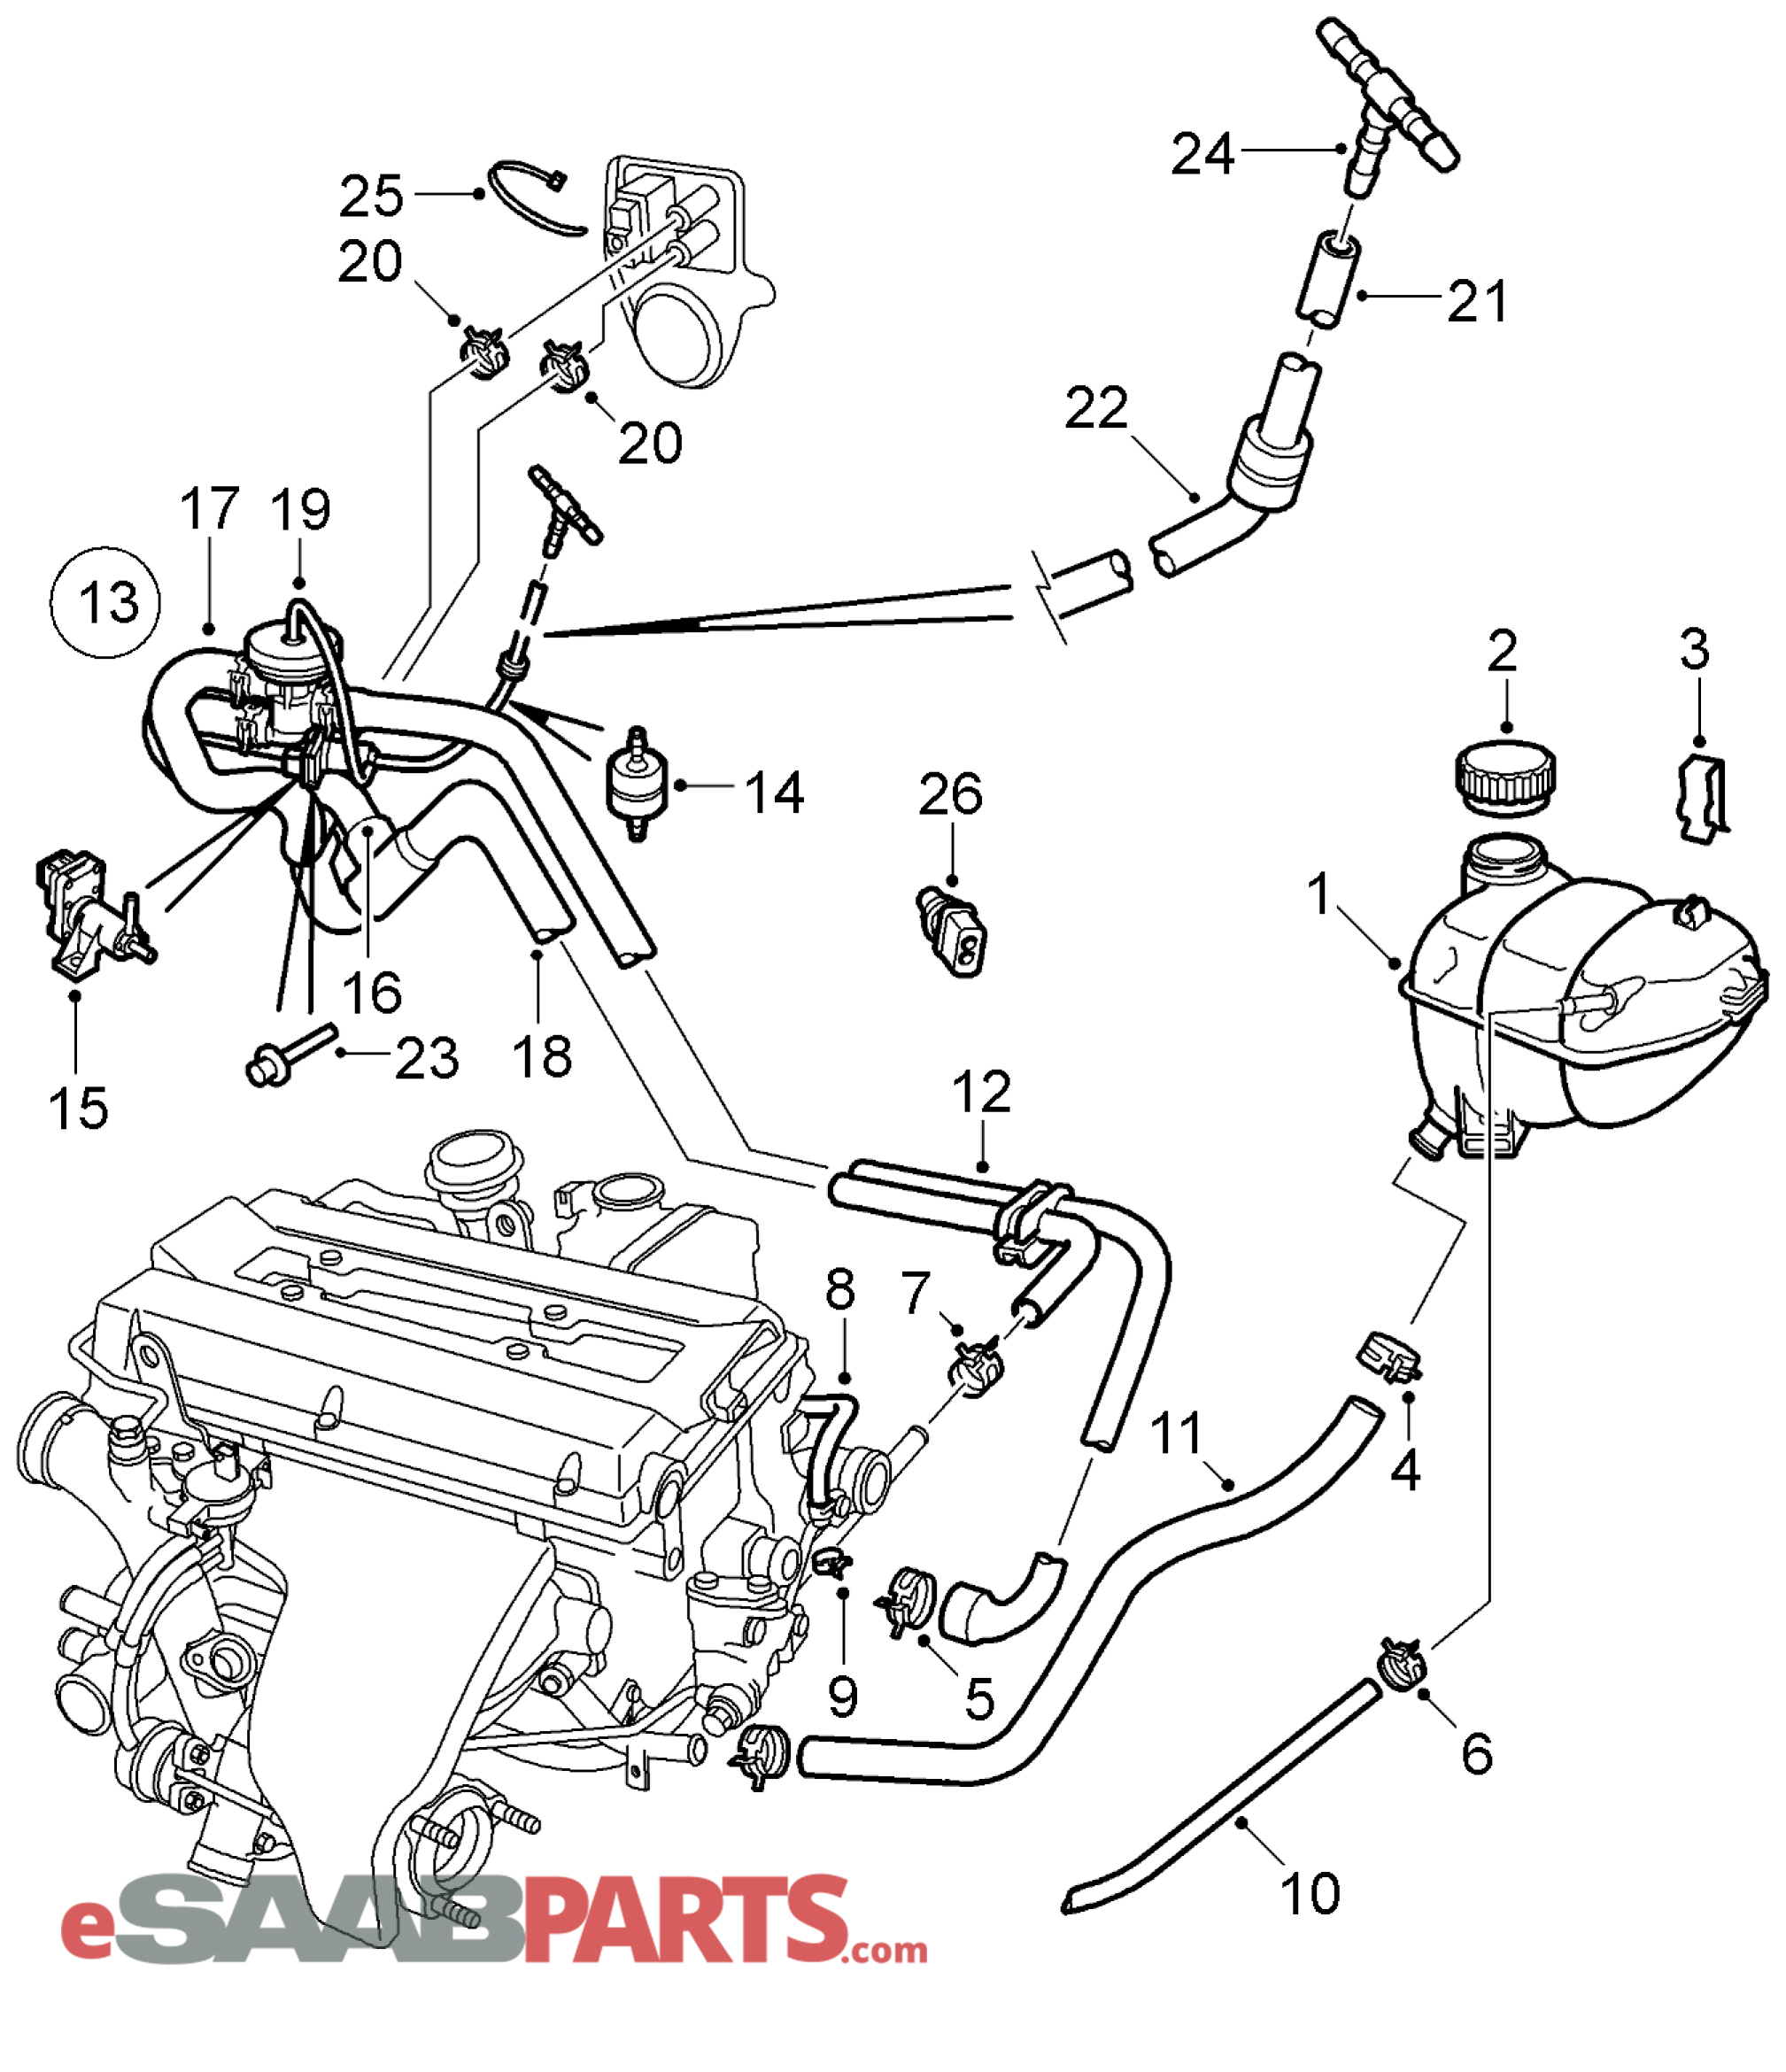 2000 Mercury Mystique Timing Belt Diagram together with Grand Prix Fuel Filter Location in addition 1994 Toyota Ta A Fuel Pump Fuse further Egr System Diagram besides 99 Eclipse Fuse Box Diagram. on 2000 cougar fuel filter location